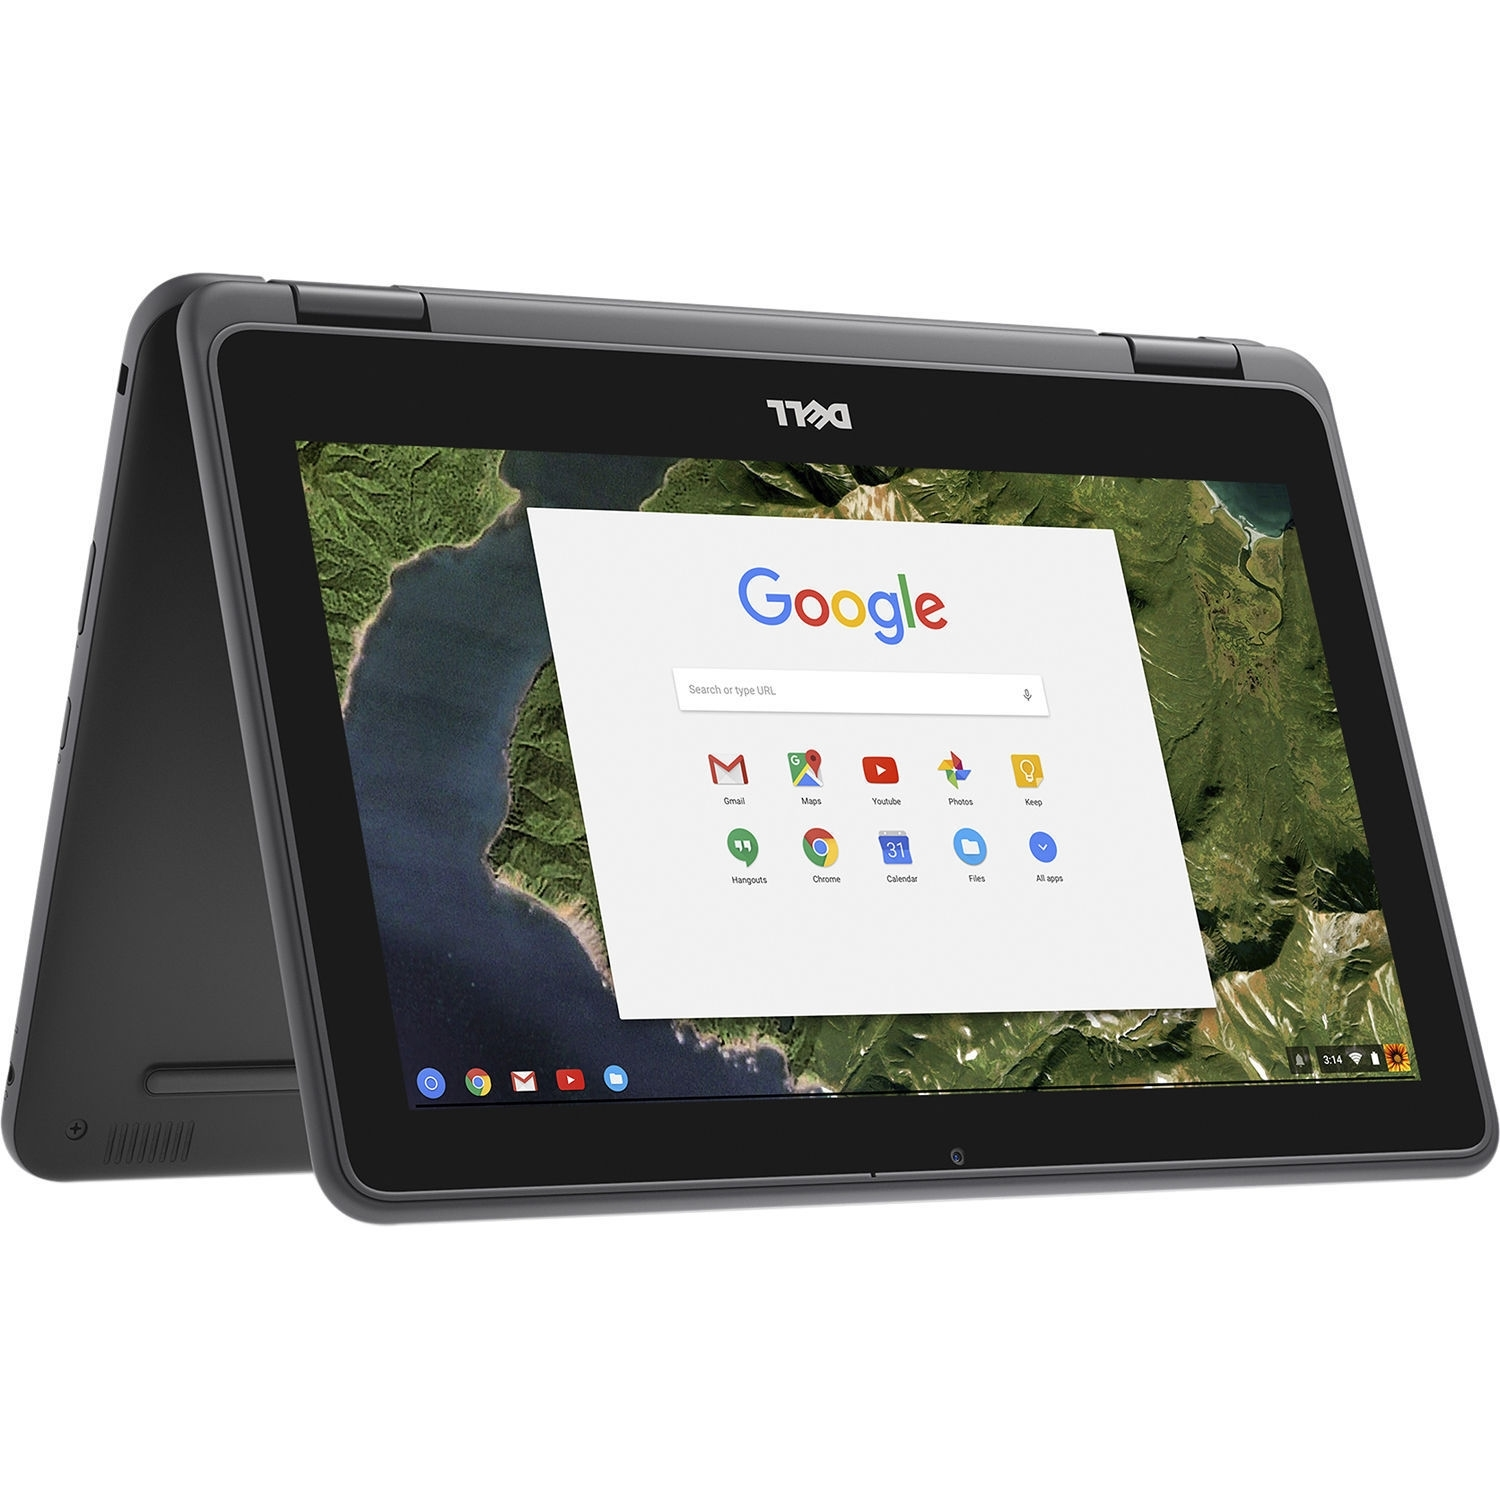 Dell Chromebook 11 - 3189 Intel Celeron N3060 X2 1.6GHz 4GB 16GB